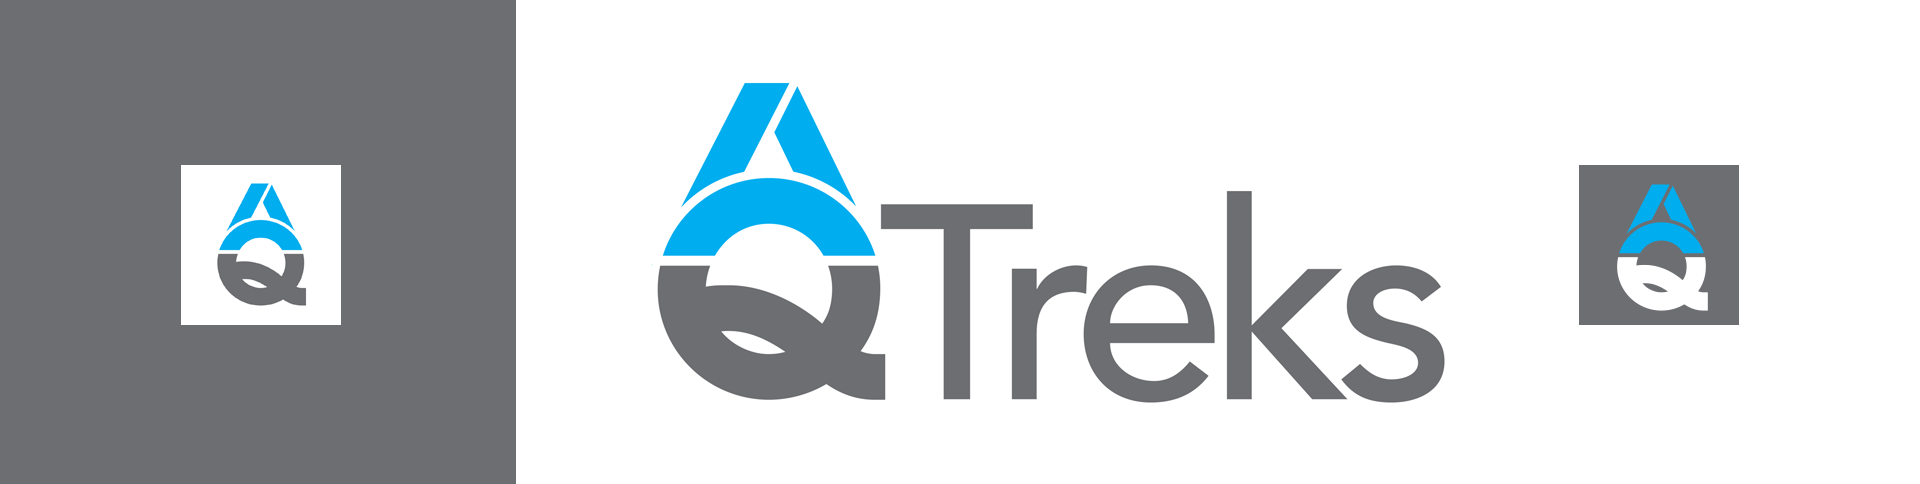 AQ Treks - a program developed by 2B Technologies that engages students in measuring chemicals in the air by actively doing treks.